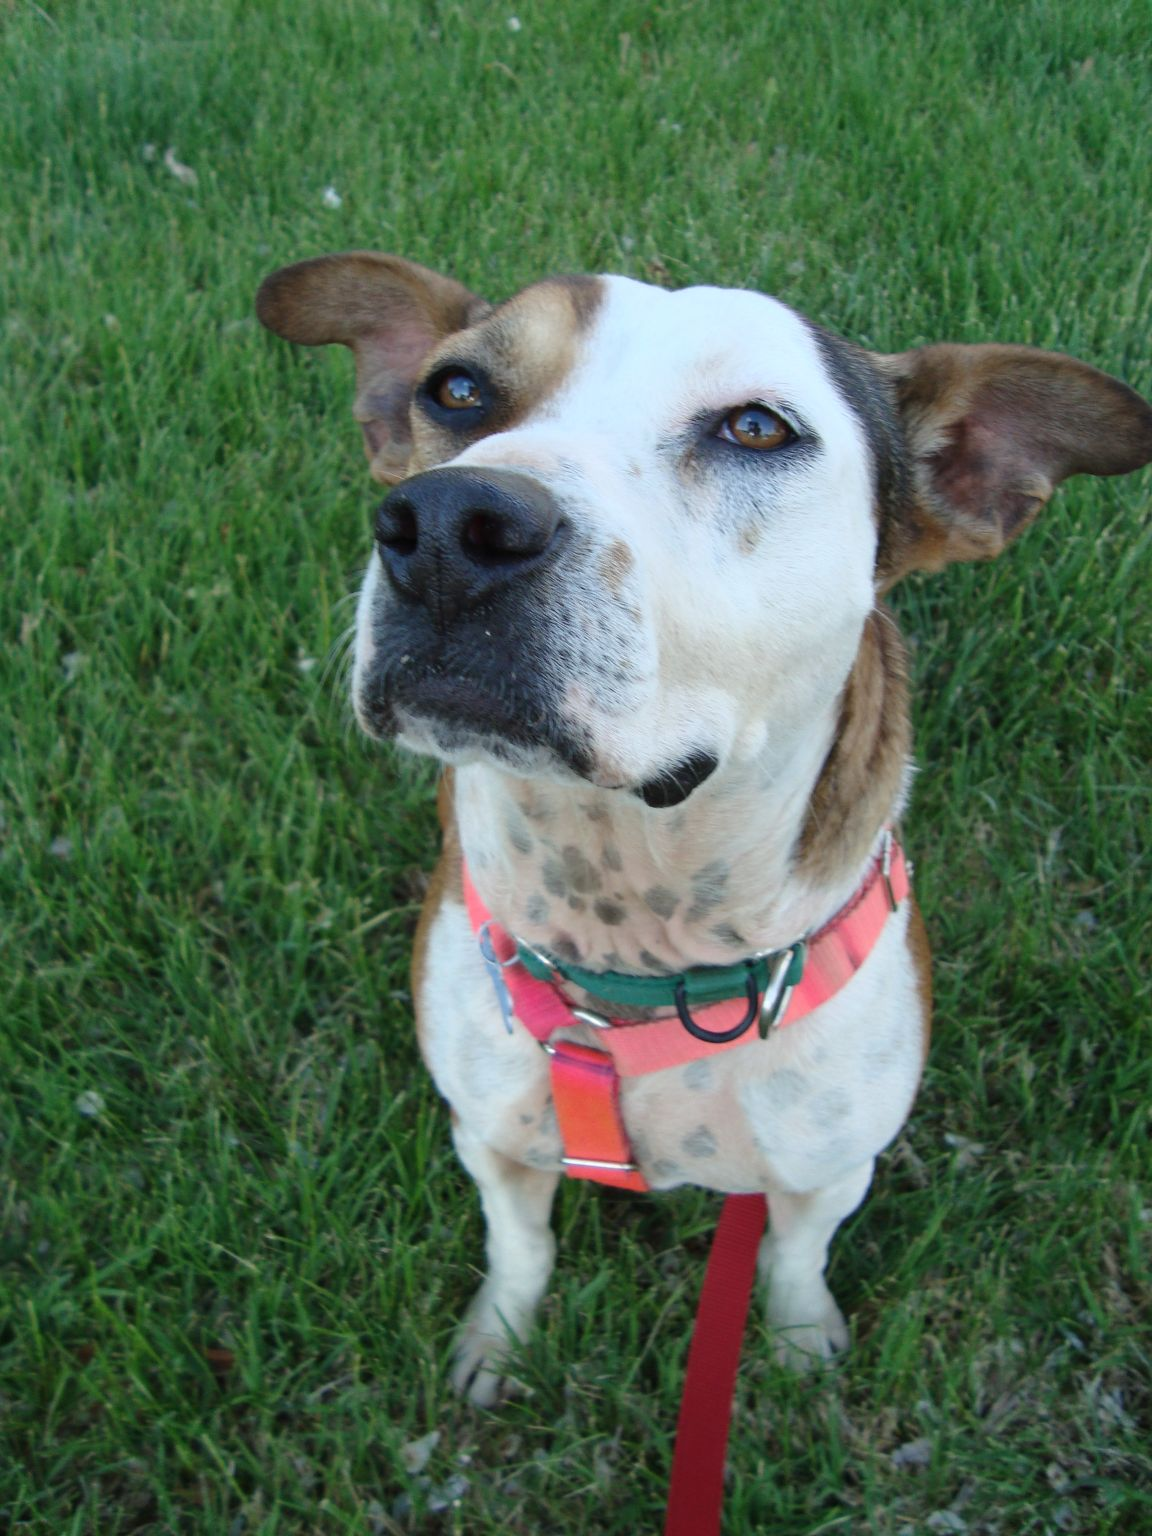 Clover, another fairly new arrival and her photo isn't on the website yet.  A cattle dog mix, this young girl has good manners on leash and loves to disembowel toys.  A rubber chicken and a small squeaky sheep were victims during our evening together.